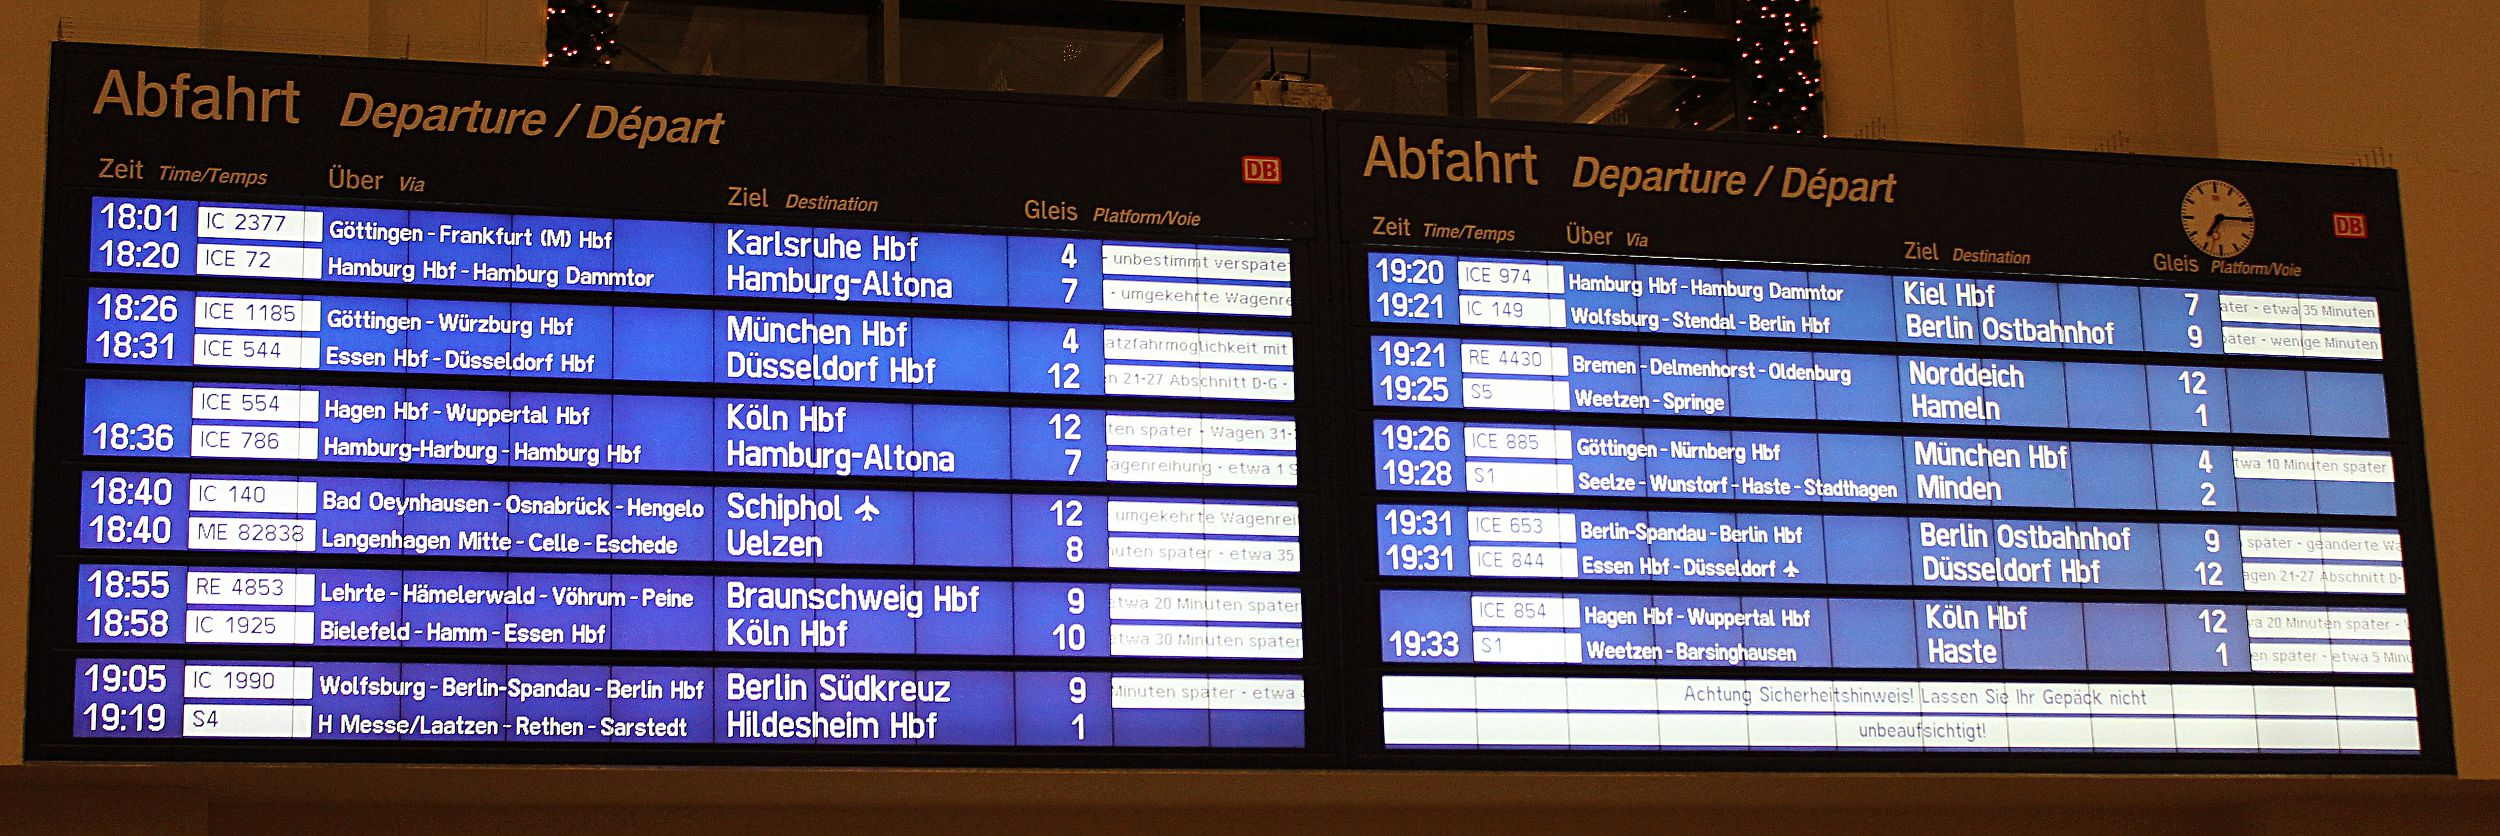 Abfahrtstafel in Hannover am 2010-12-17